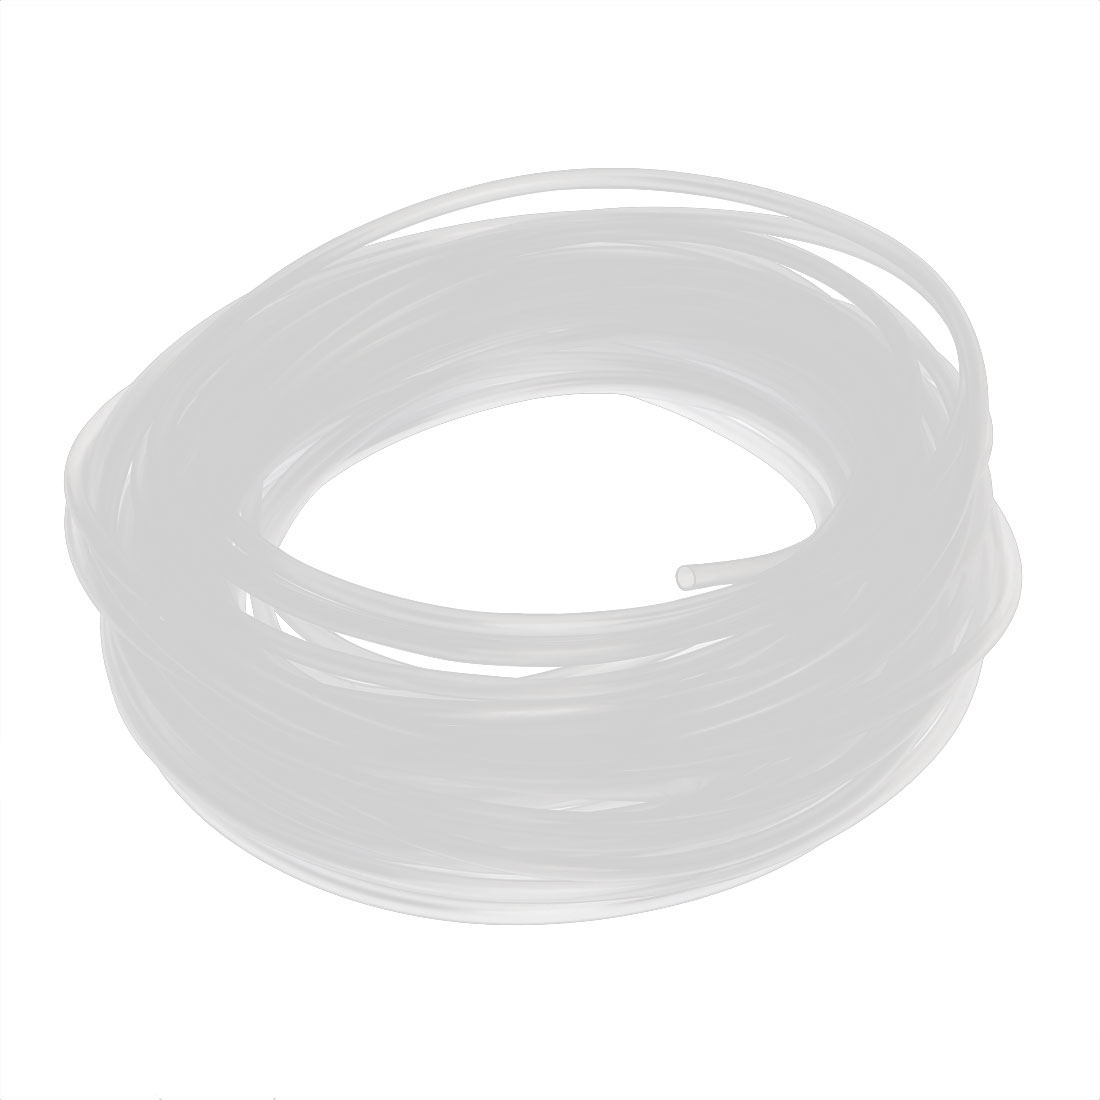 15M Long 2mm Inner Dia. Polyolefin Heat Shrinkable Tube Wire Wrap Sleeve Clear